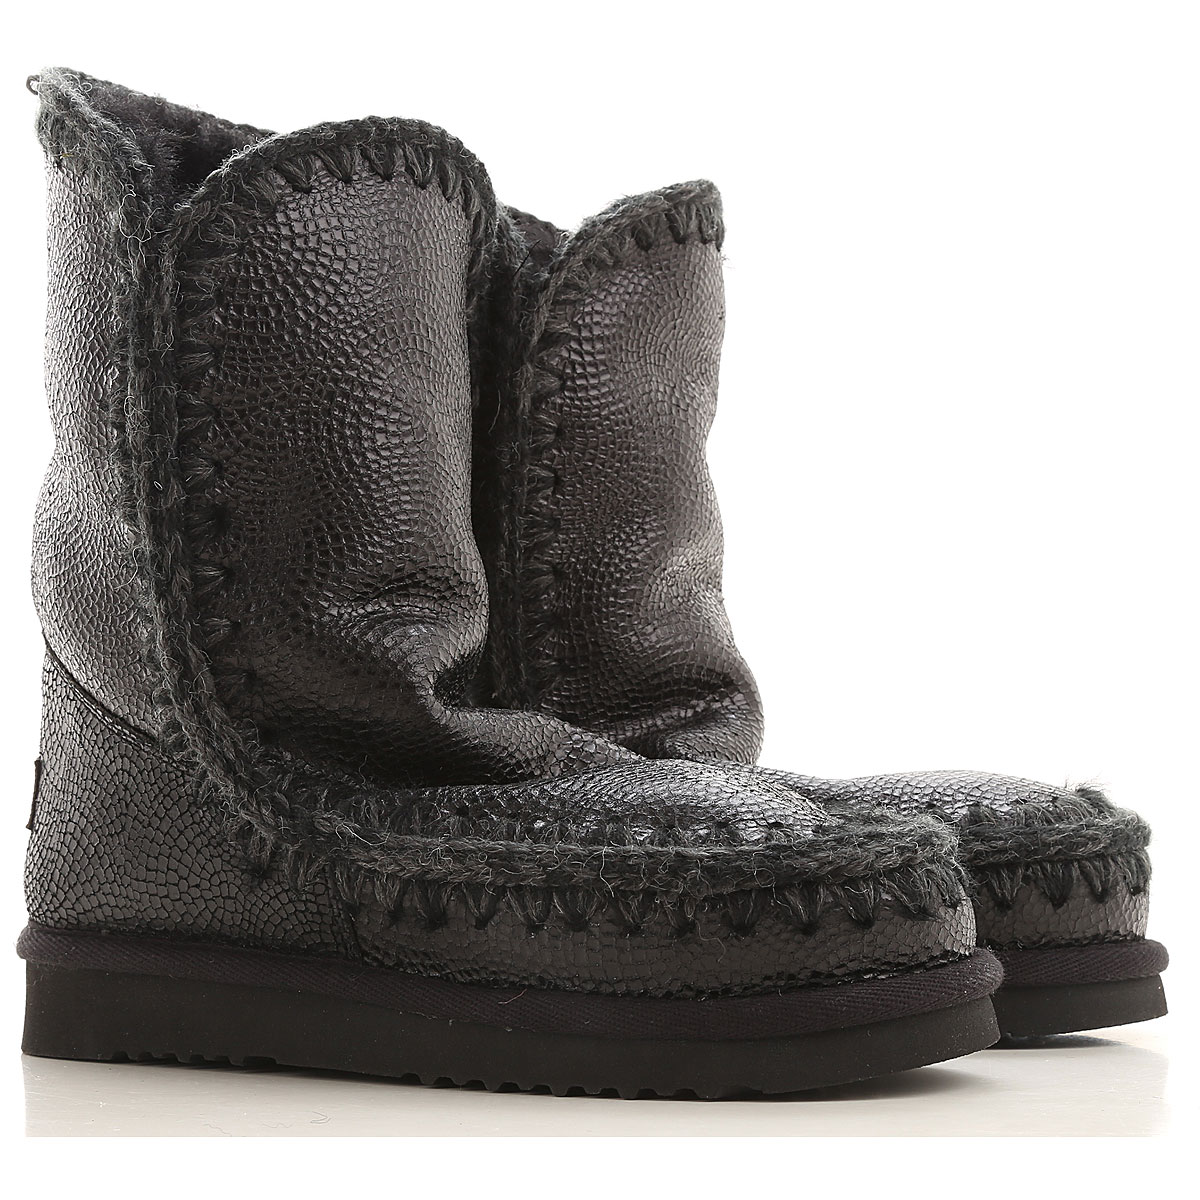 Mou Boots for Women, Booties On Sale in Outlet, Black, sheepskin, 2019, EUR 37 - UK 4 - USA 6.5 EUR 38 - UK 5 - USA 7.5 EUR 39 - UK 6 - USA 8.5 EUR 40